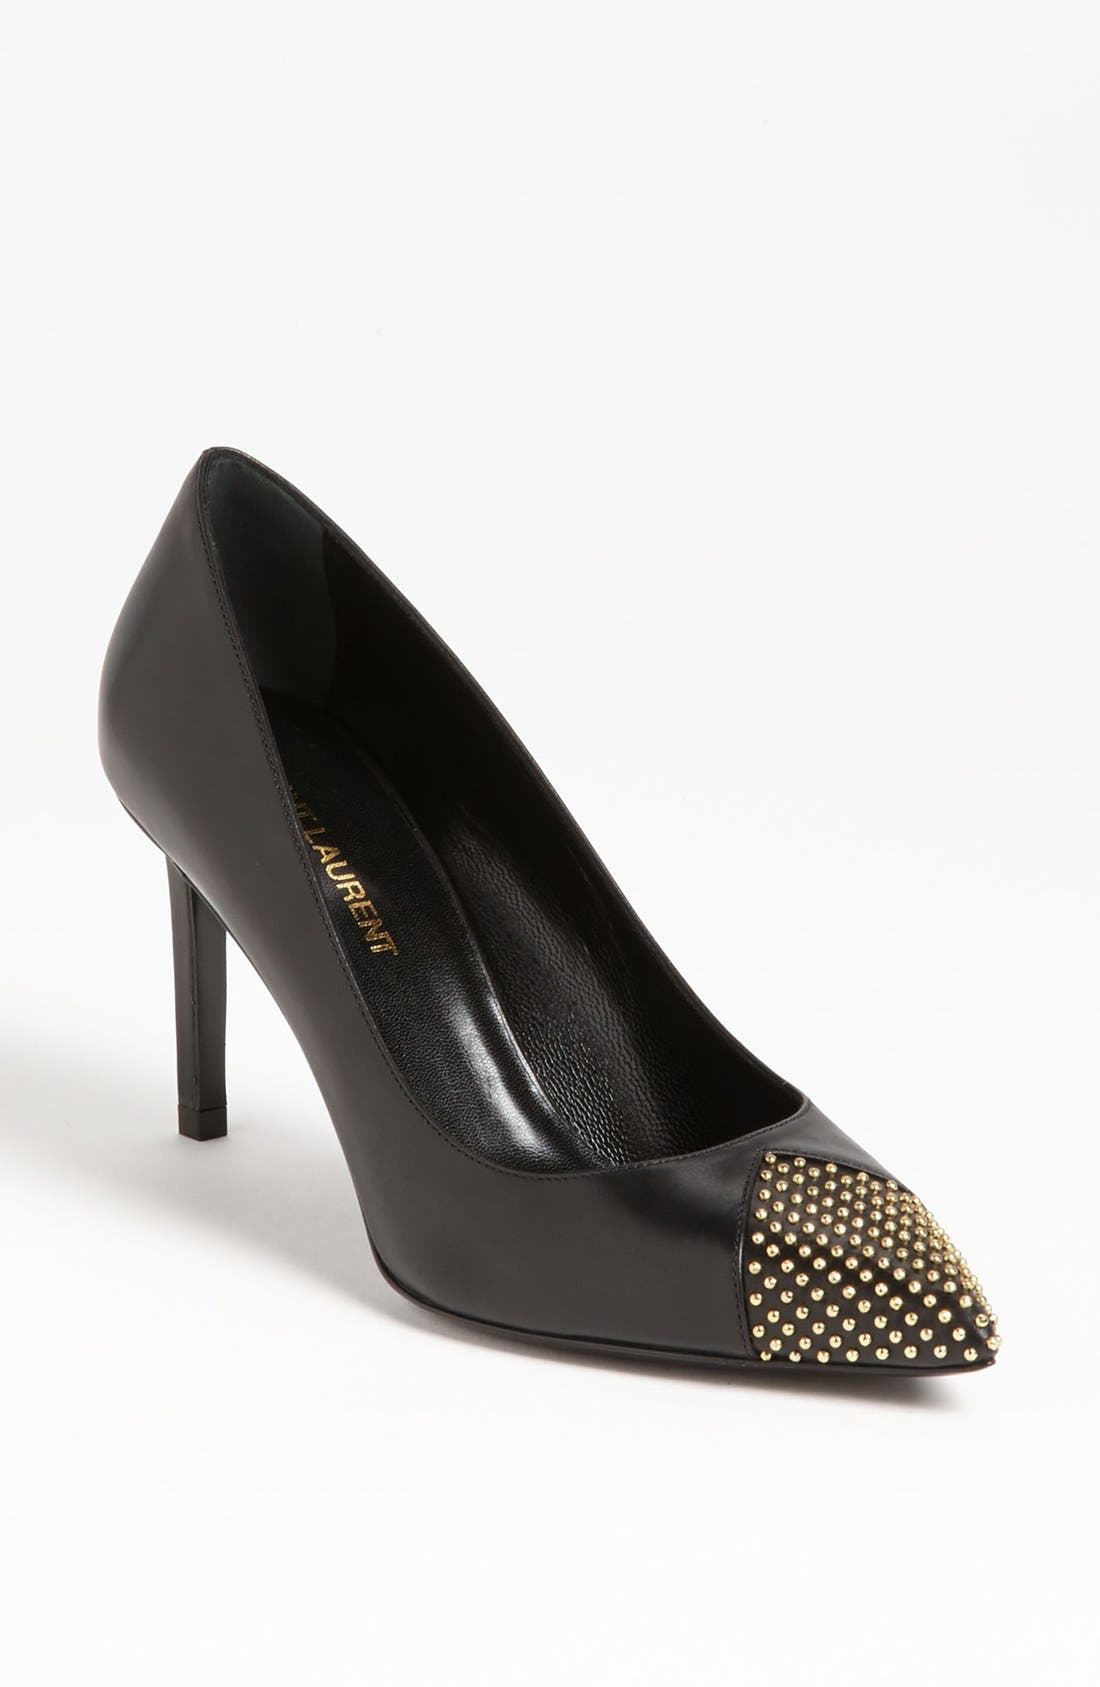 Main Image - Saint Laurent Studded Toe Pump